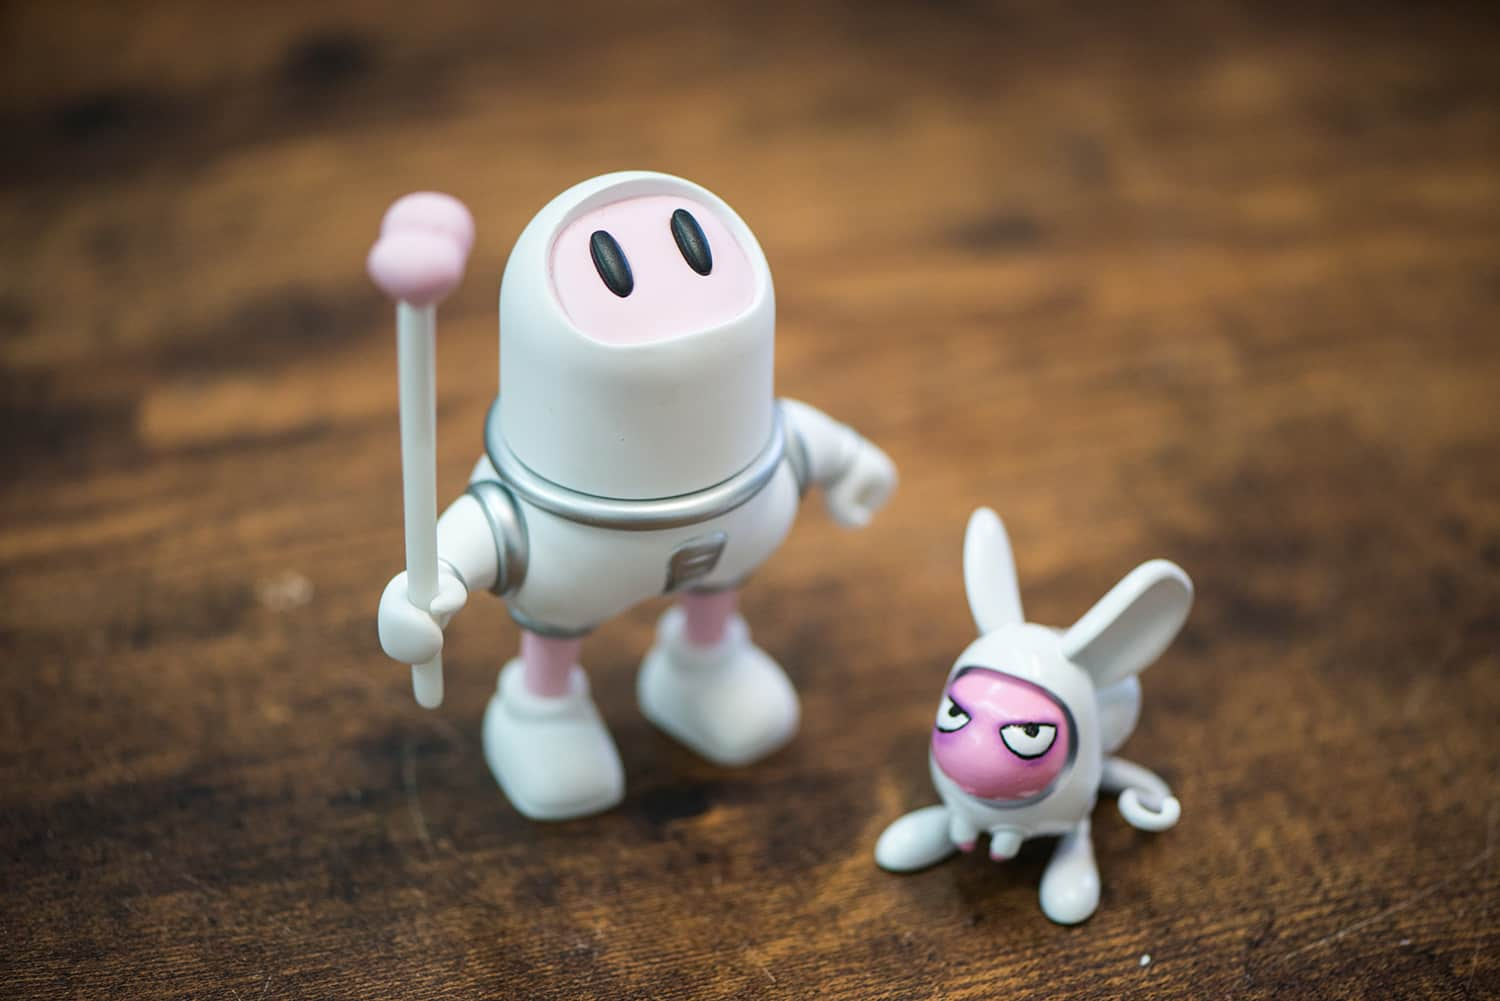 3D Printed asstronaut and pet